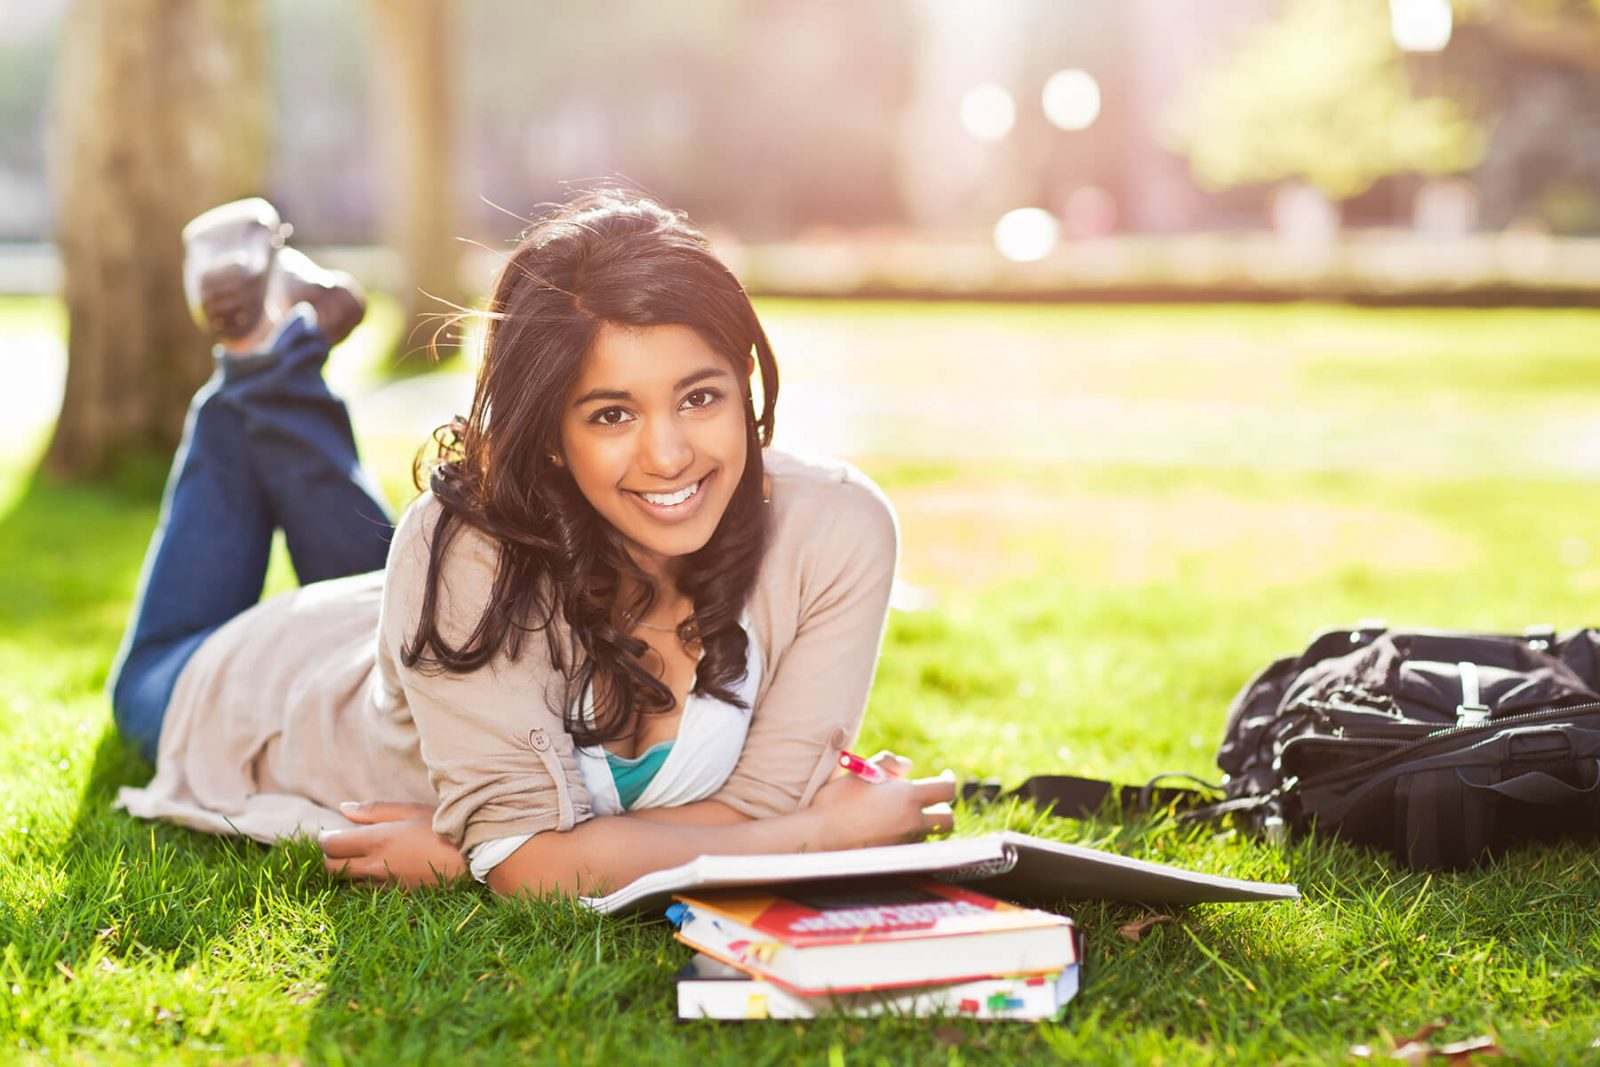 student studying on campus lawn